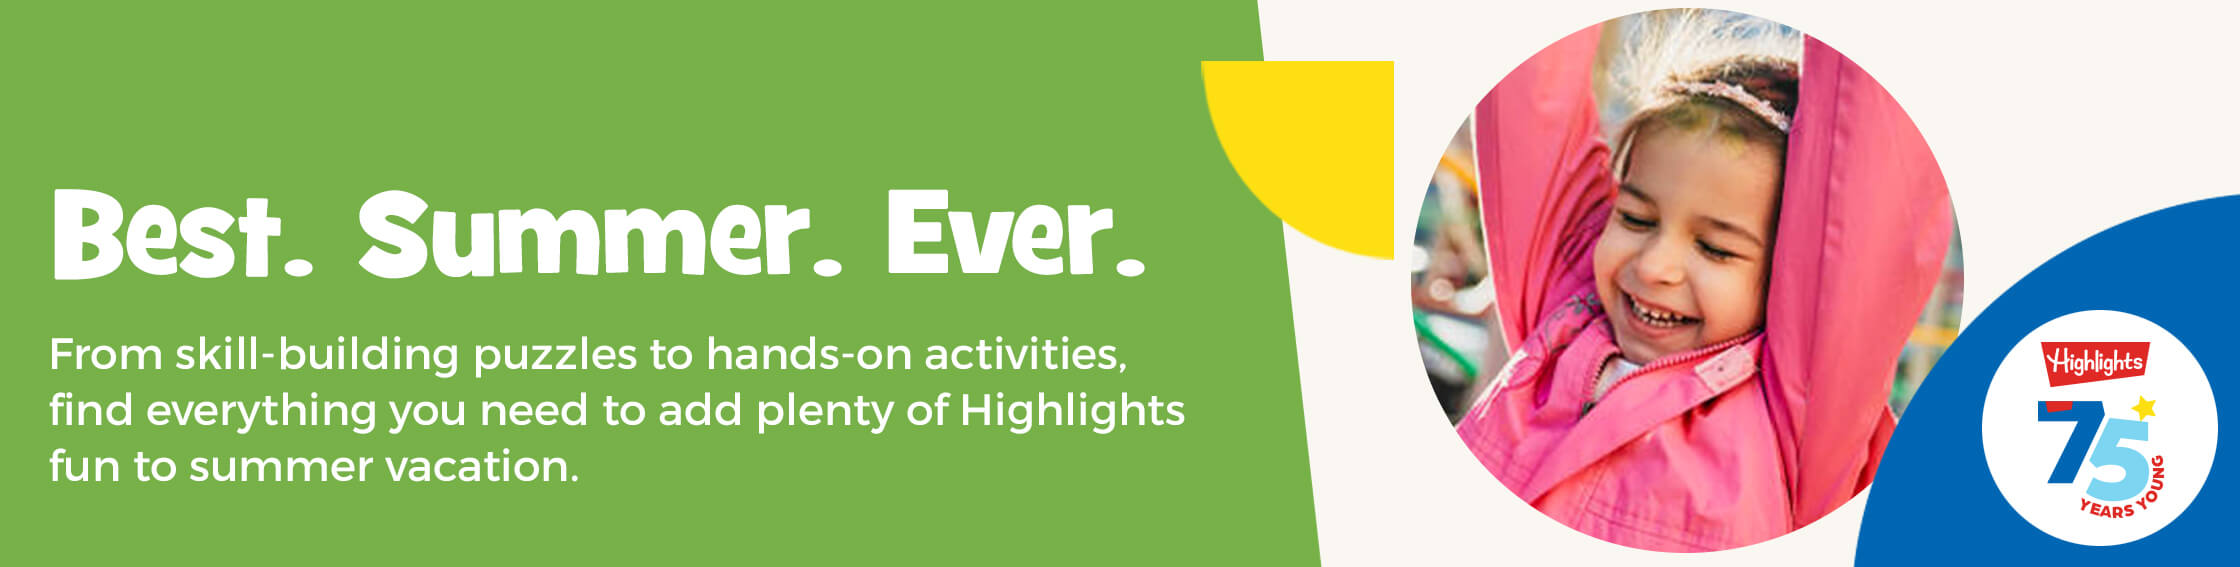 From skill-building puzzles to hands-on activities, find everything you need to add plenty of Highlights fun to summer vacation.